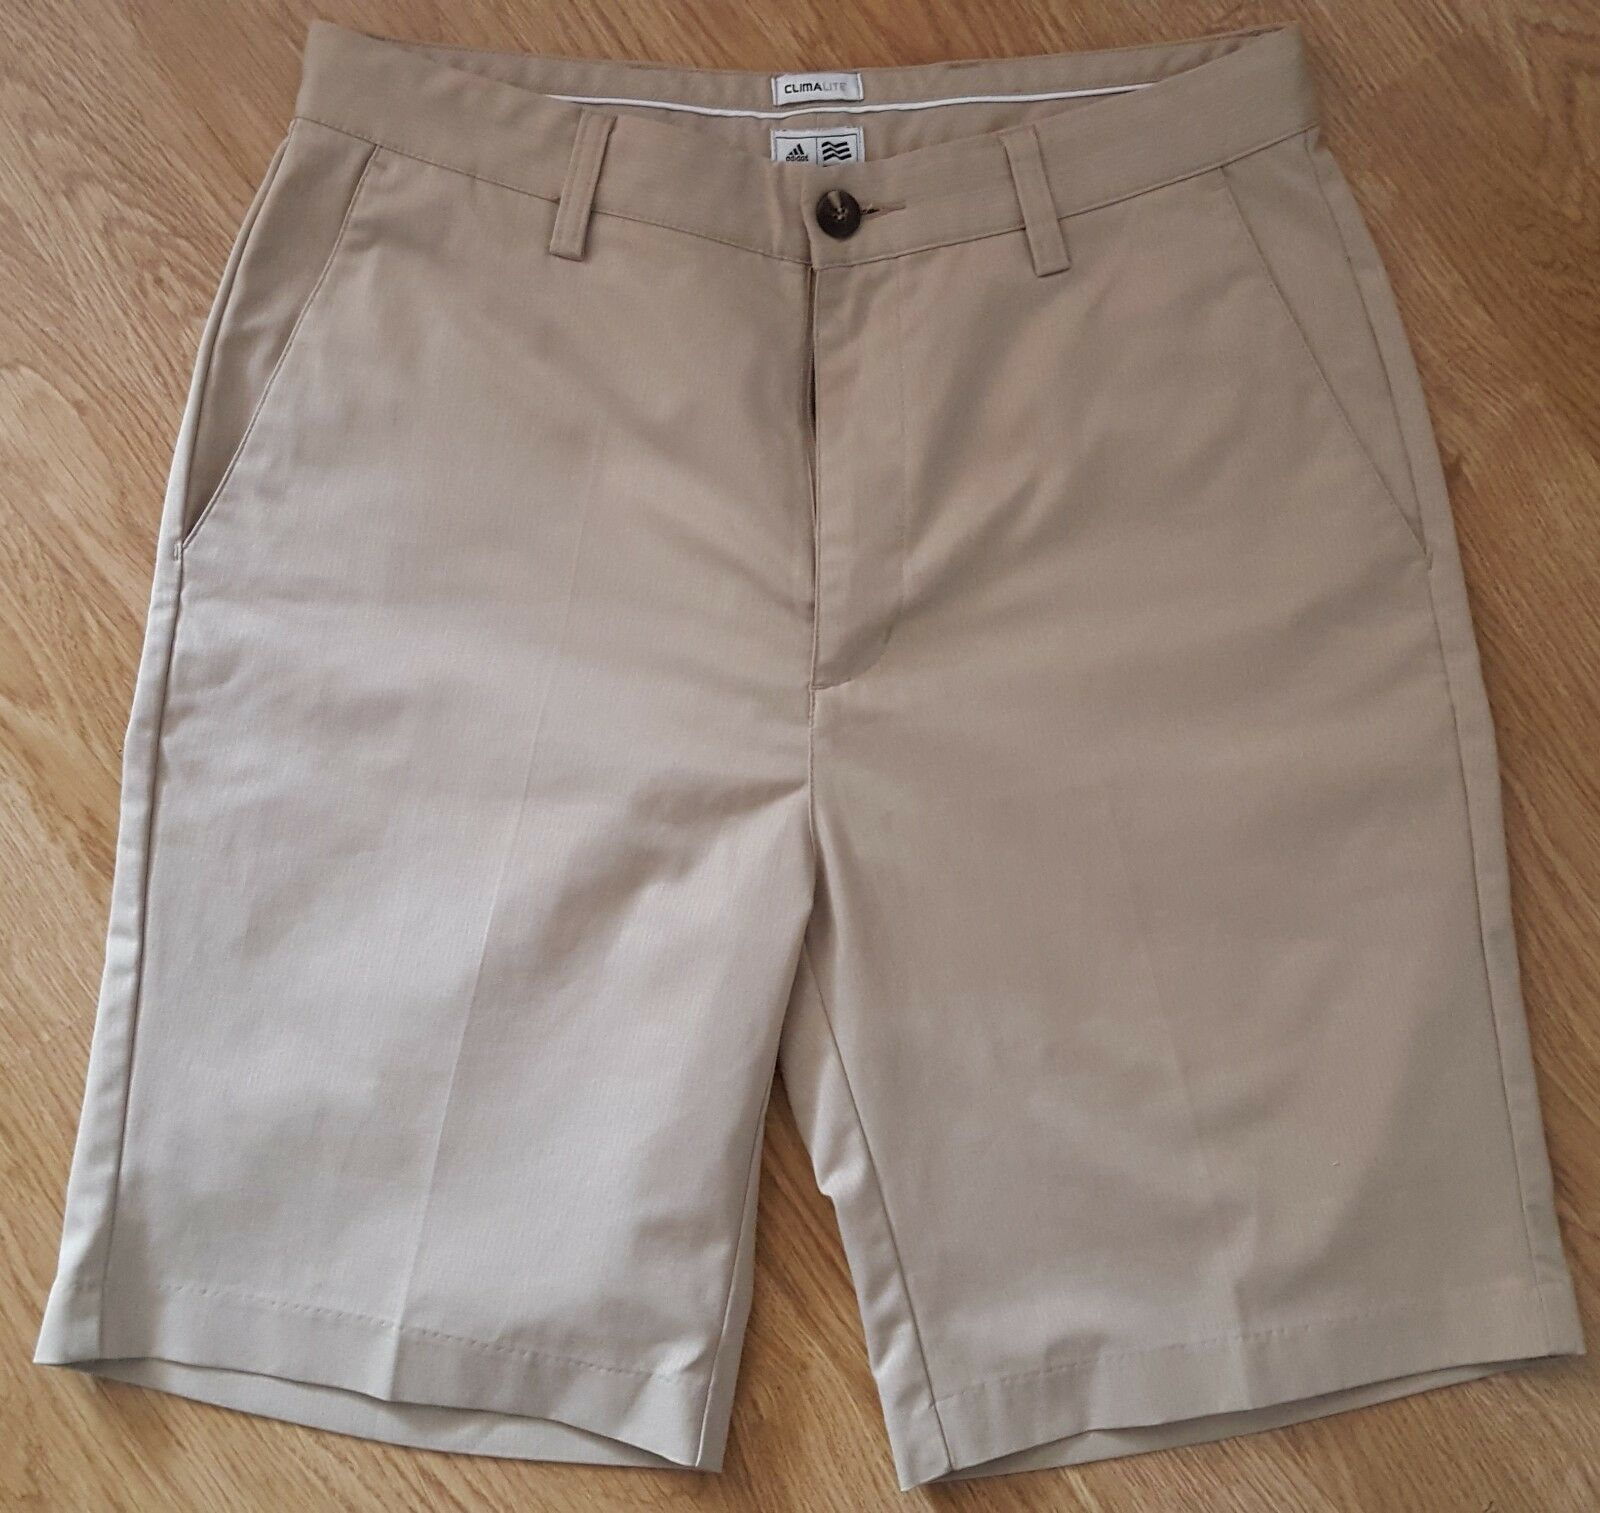 Adidas Casual Shorts Climalite Zip Fly Striped Beige Size W30